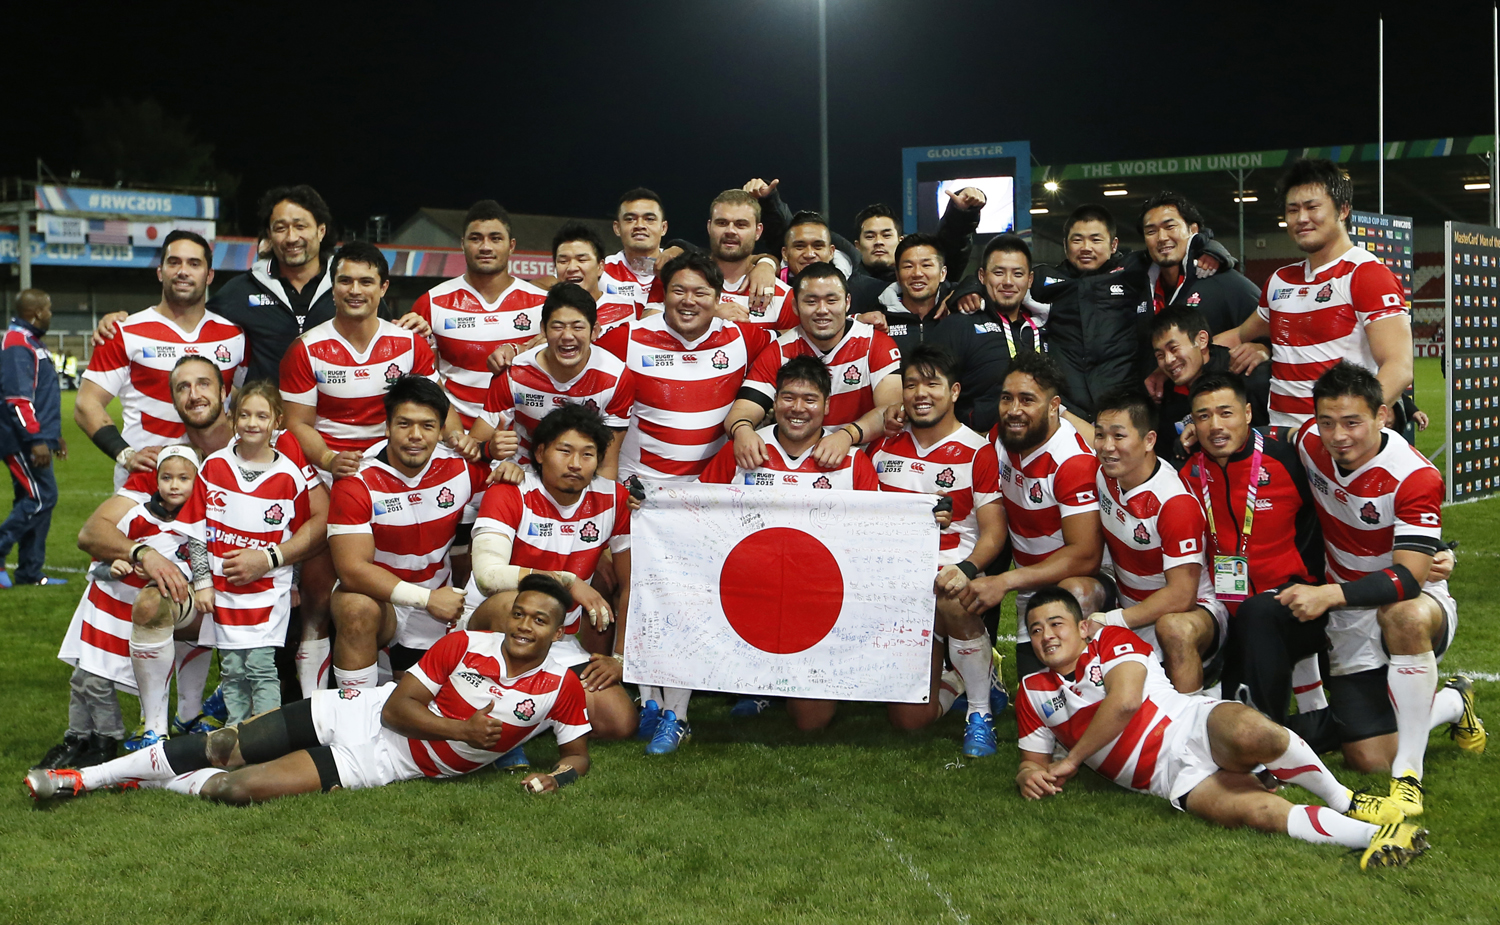 Rugby coupe du monde 2015 le journal du mondial goodbye japan - Coupe du monde rugby a 13 ...